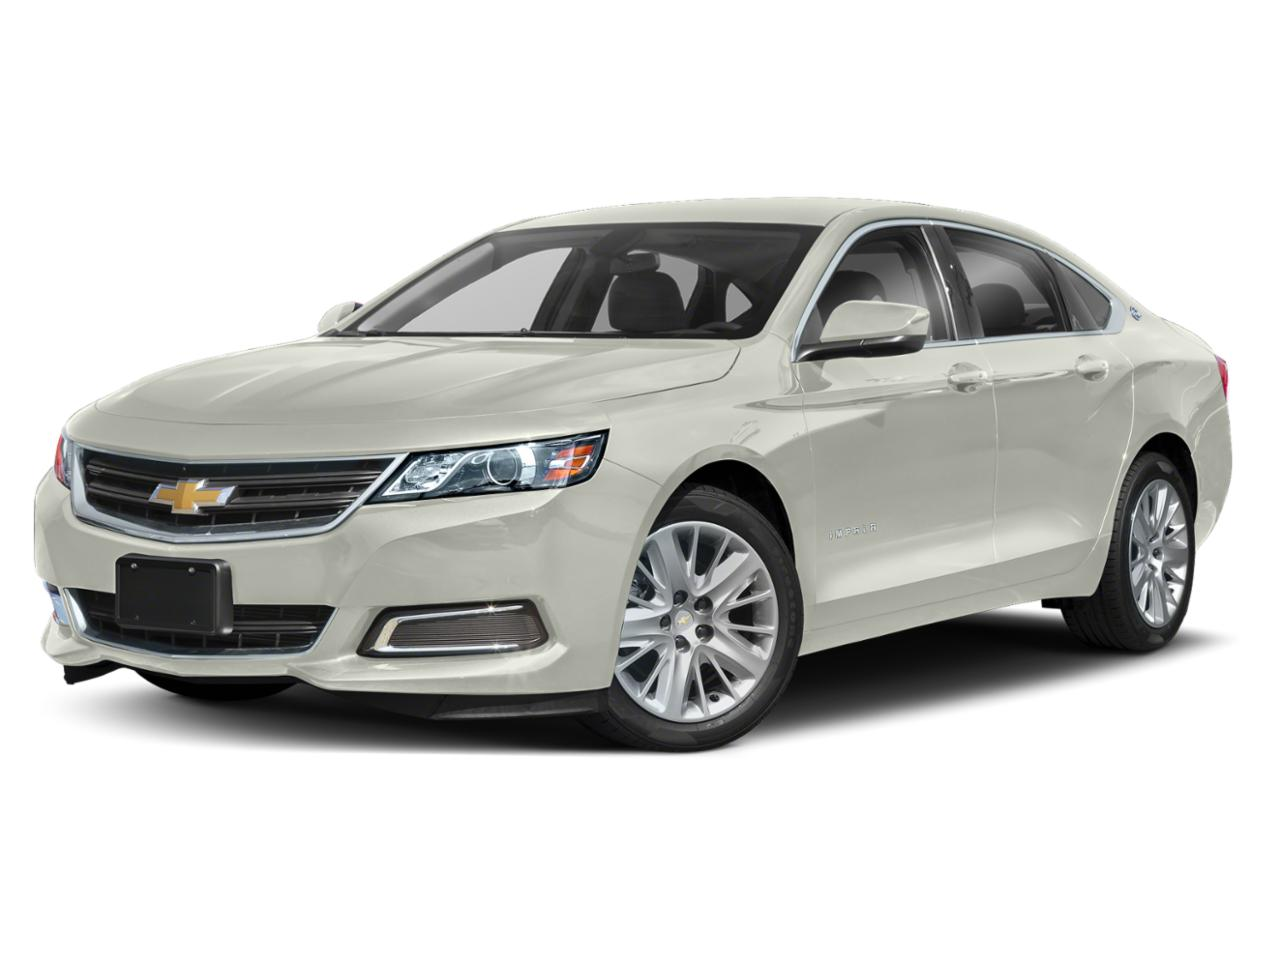 2019 Chevrolet Impala Vehicle Photo in Mount Horeb, WI 53572